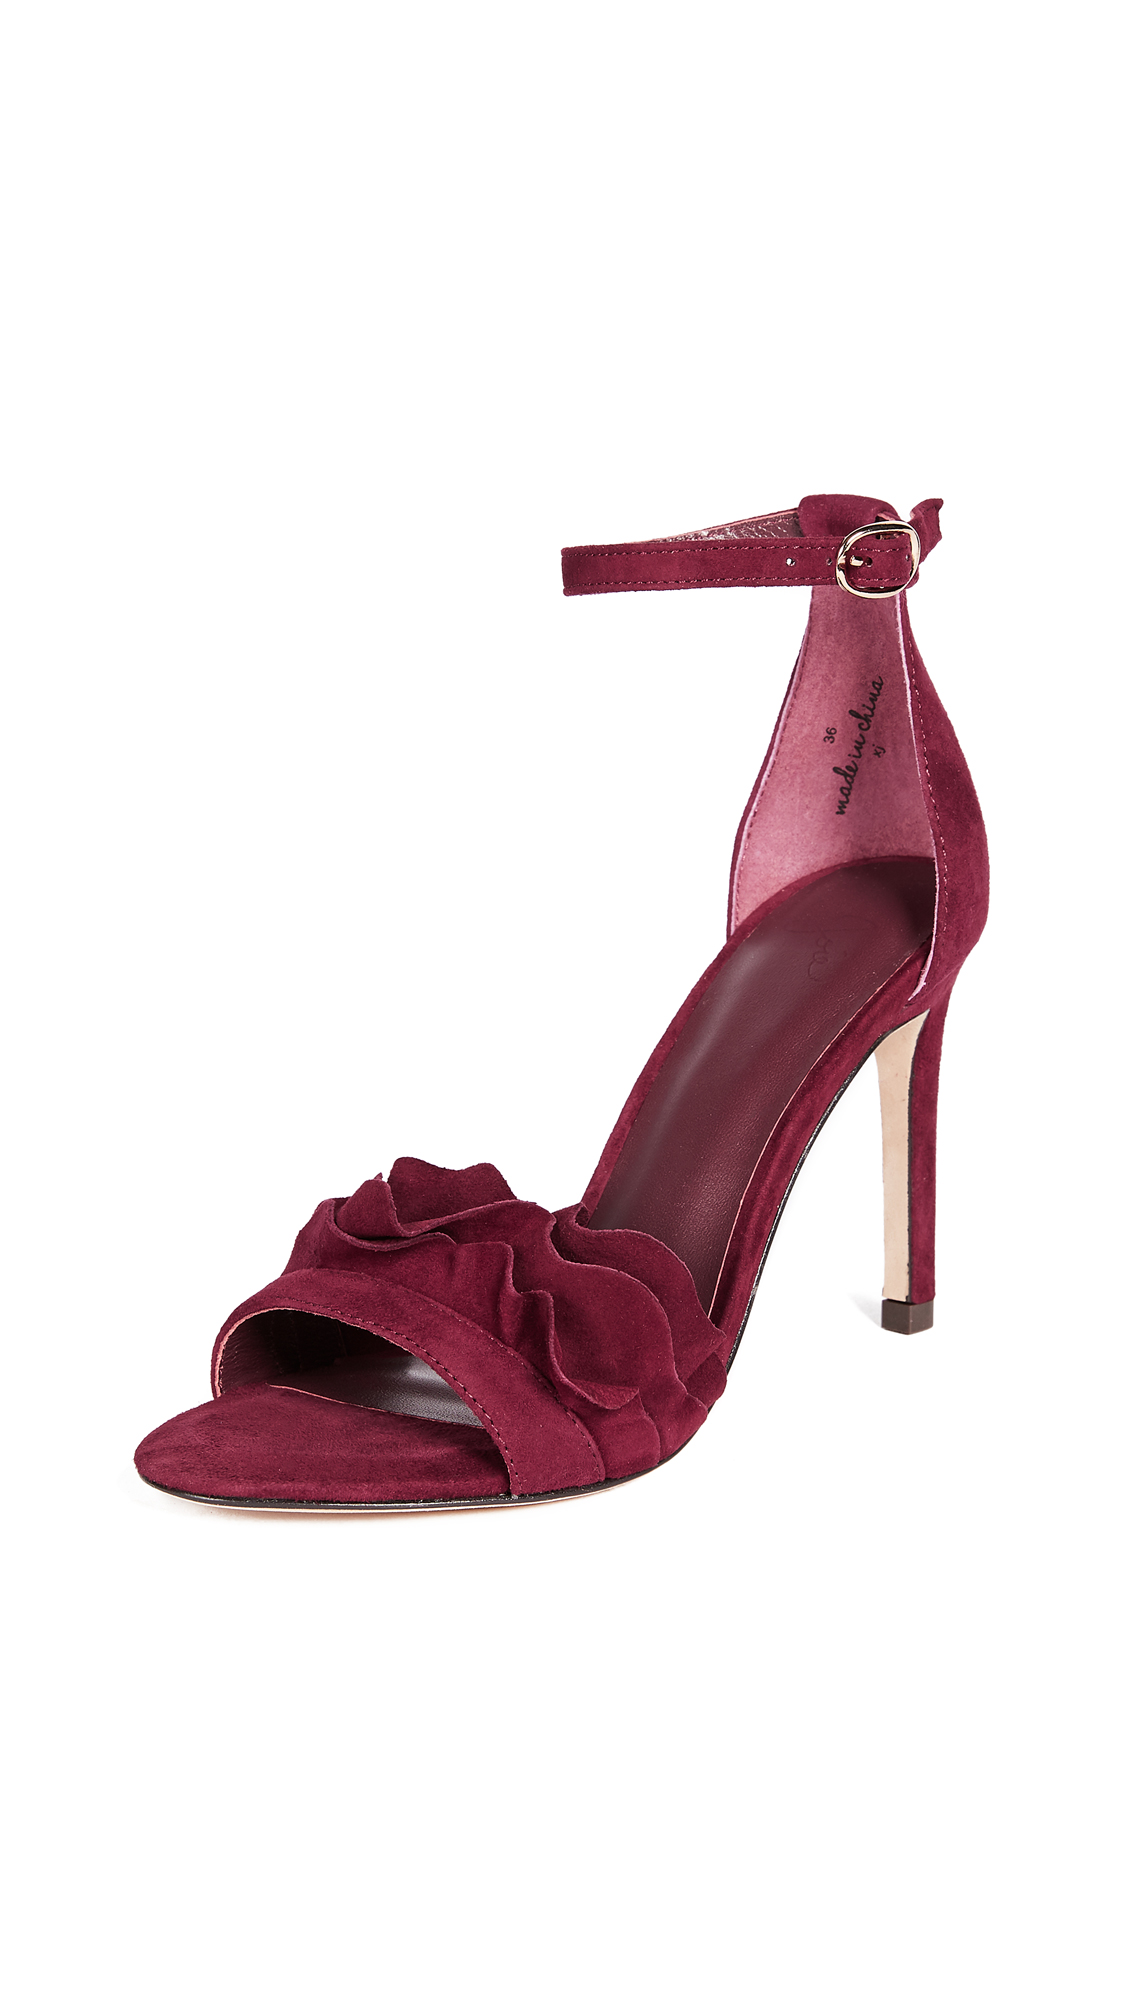 Joie Abigail Sandals - Deep Ruby